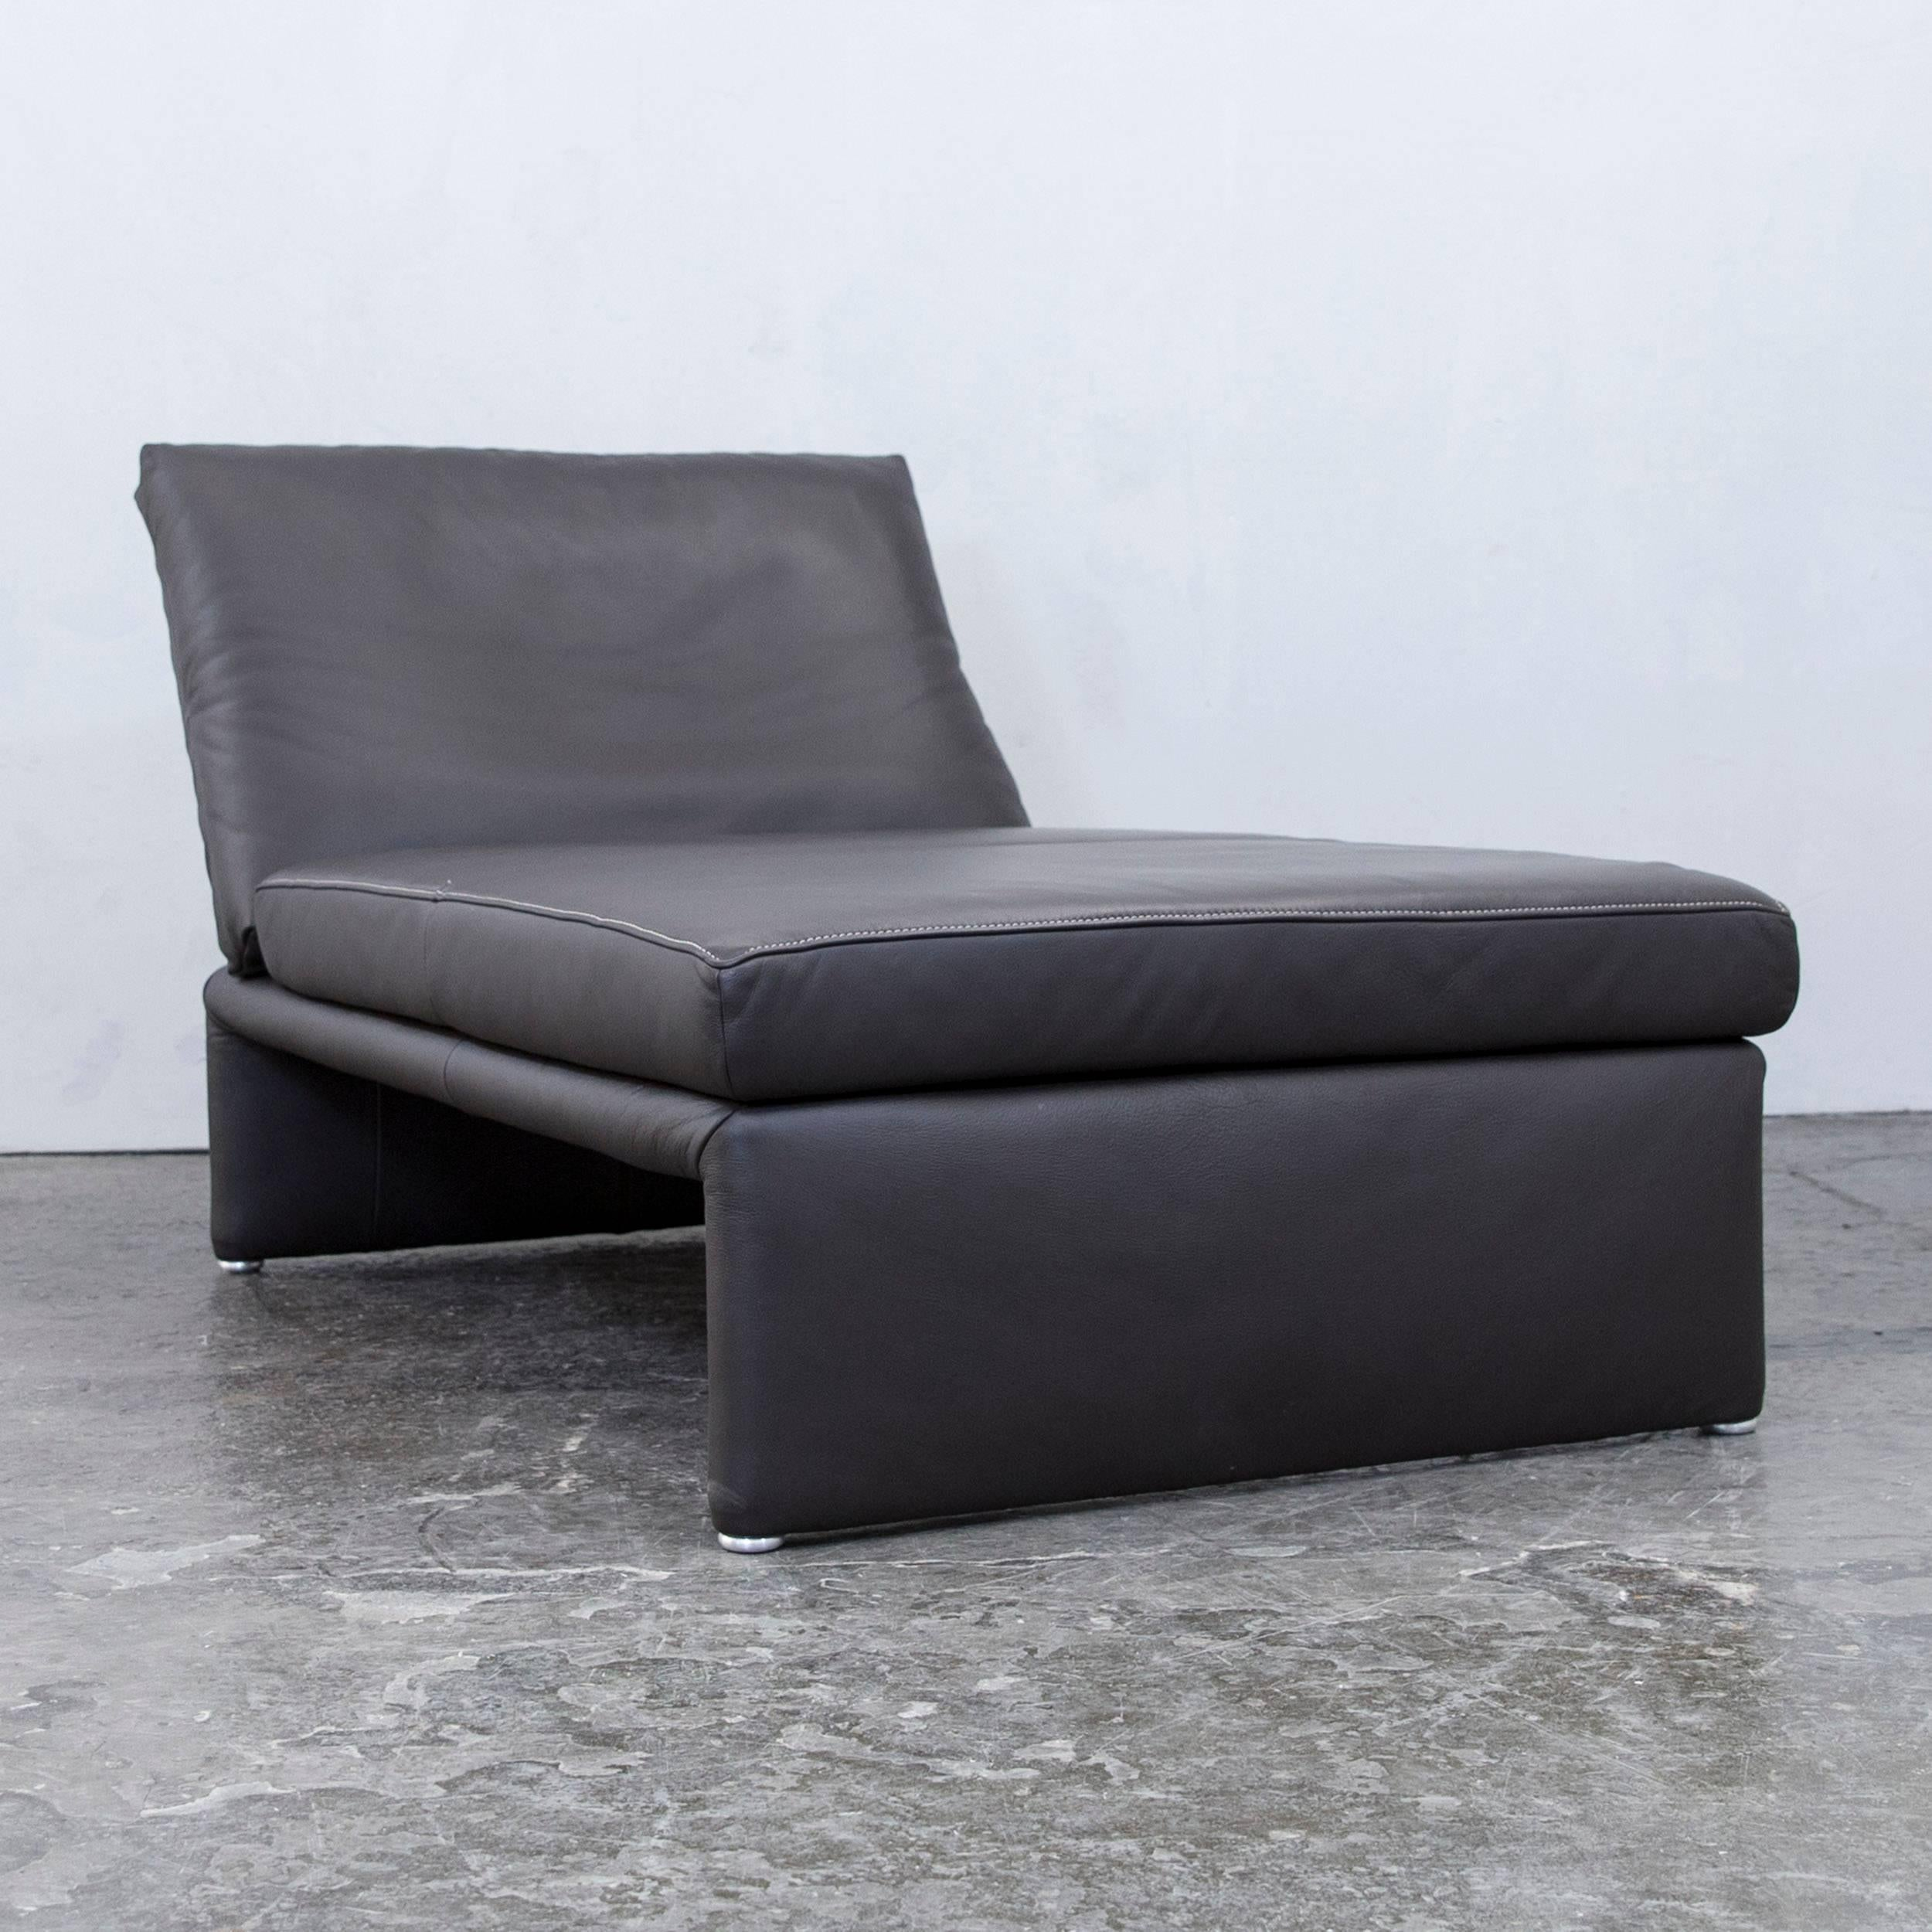 Beeindruckend Ottomane Recamiere Galerie Von Koinor Designer Chaiselongue Leather Mocca Brown Function